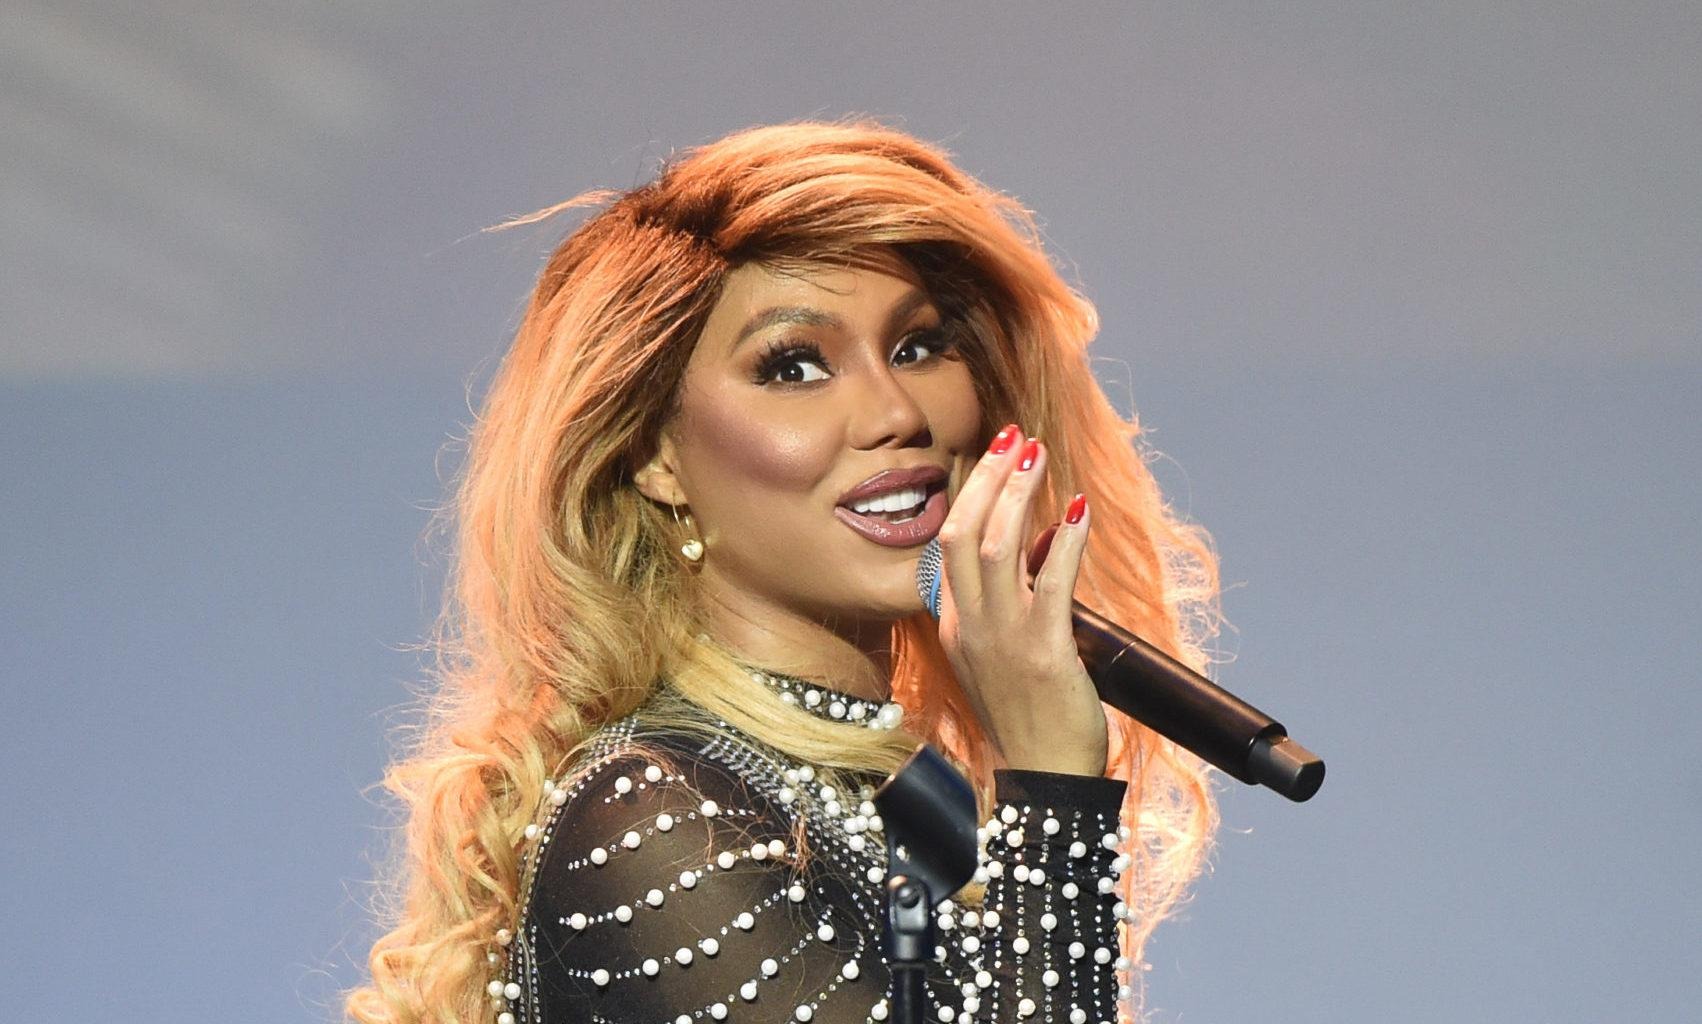 Tamar Braxton Drives Fans Crazy, Posing In Lingerie - See The Gorgeous Photo & Video